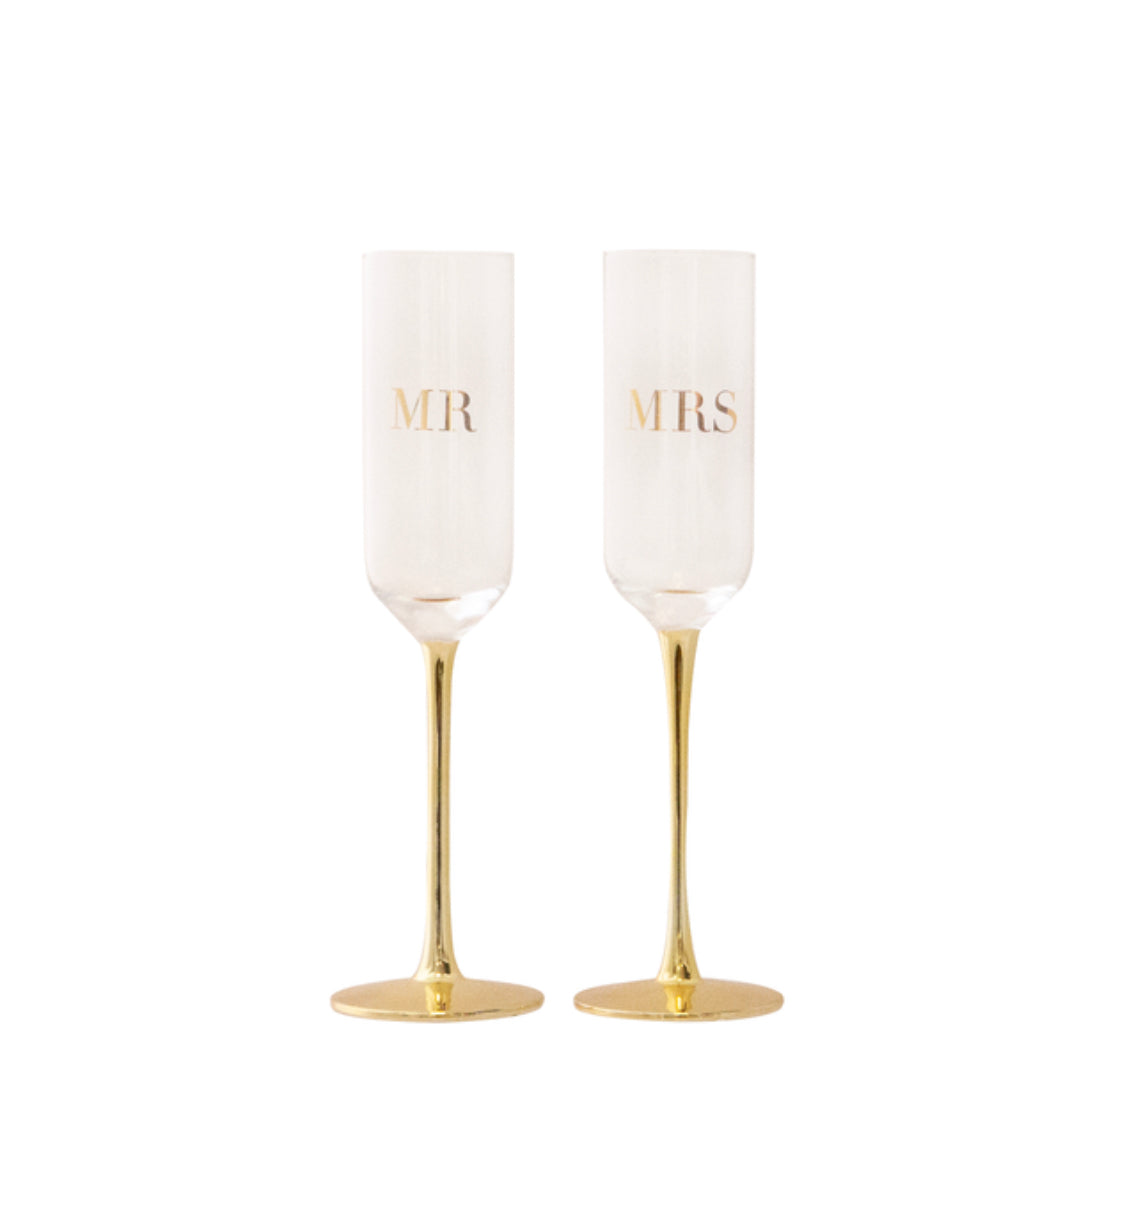 MR & MRS Wedding Champagne Crystal Flutes by Cristina Re (PRE ORDER)